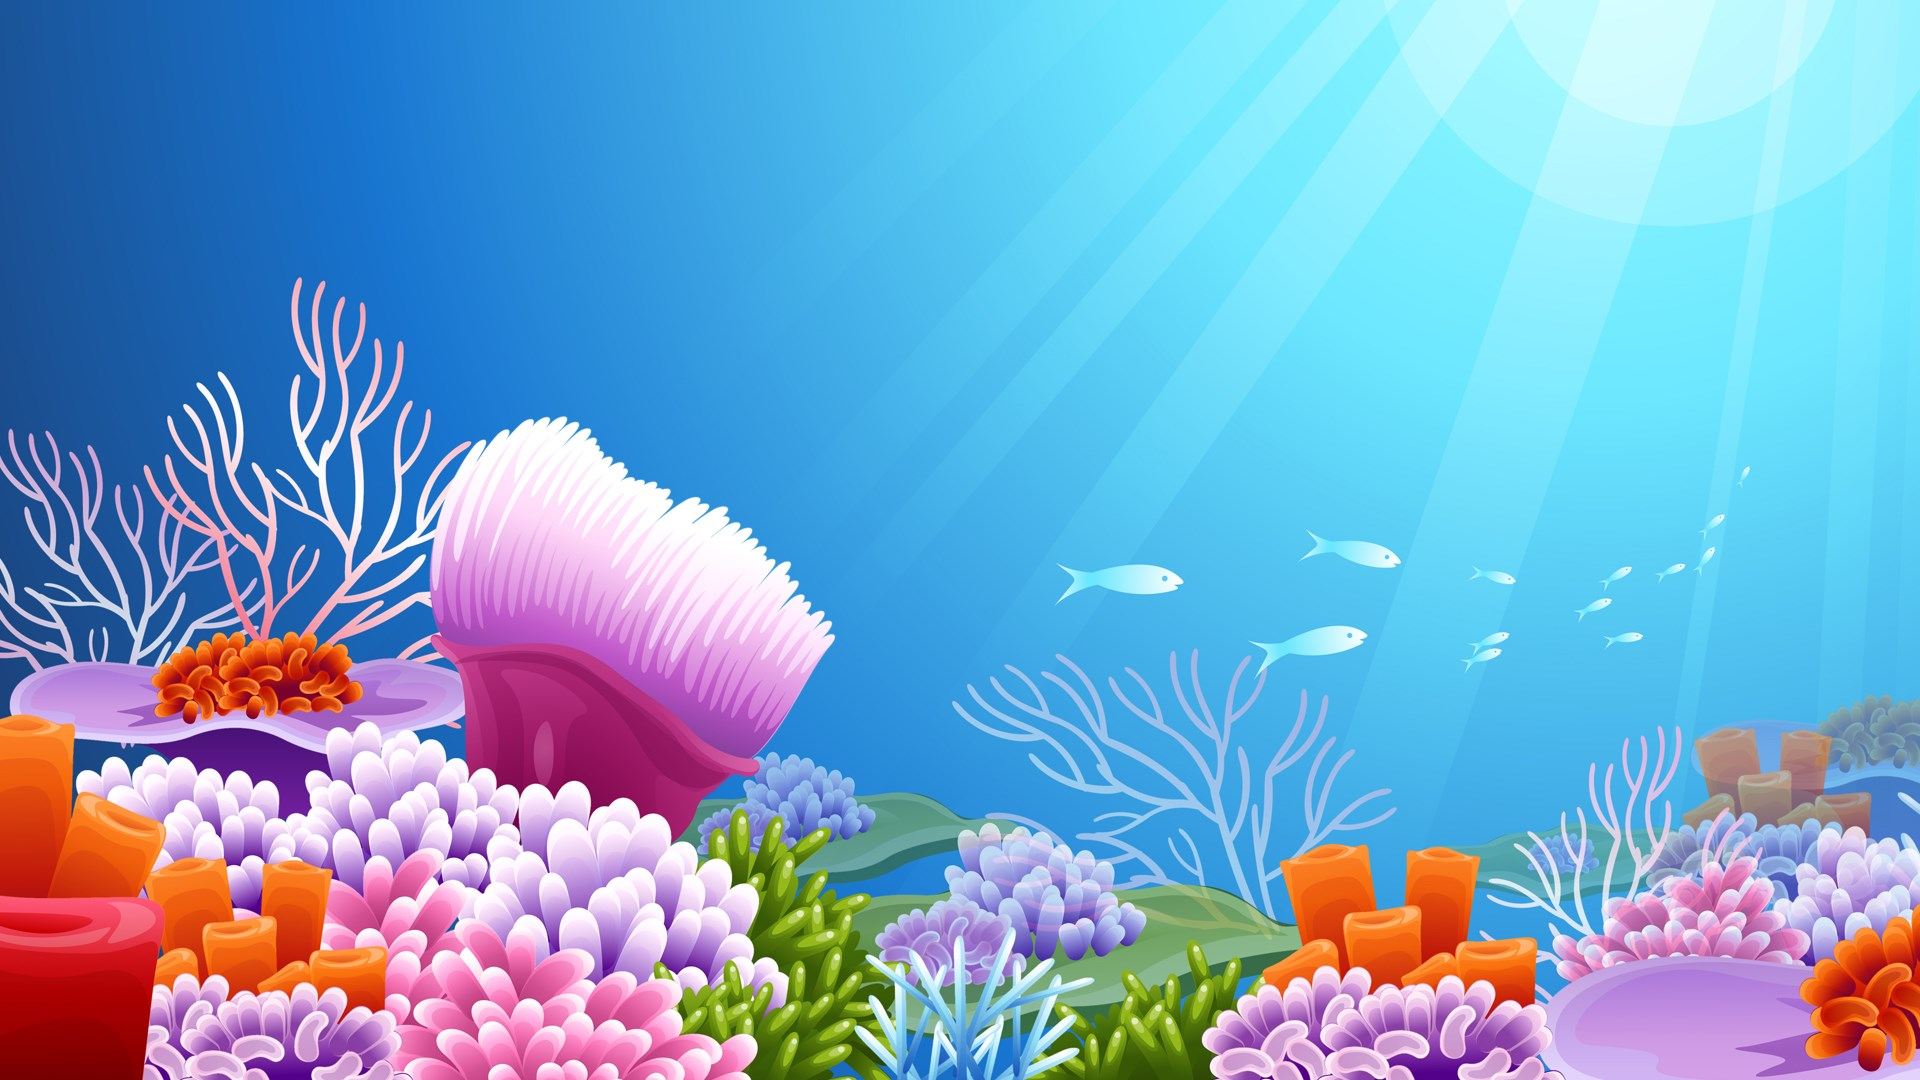 Under The Sea Wallpaper Clipart.